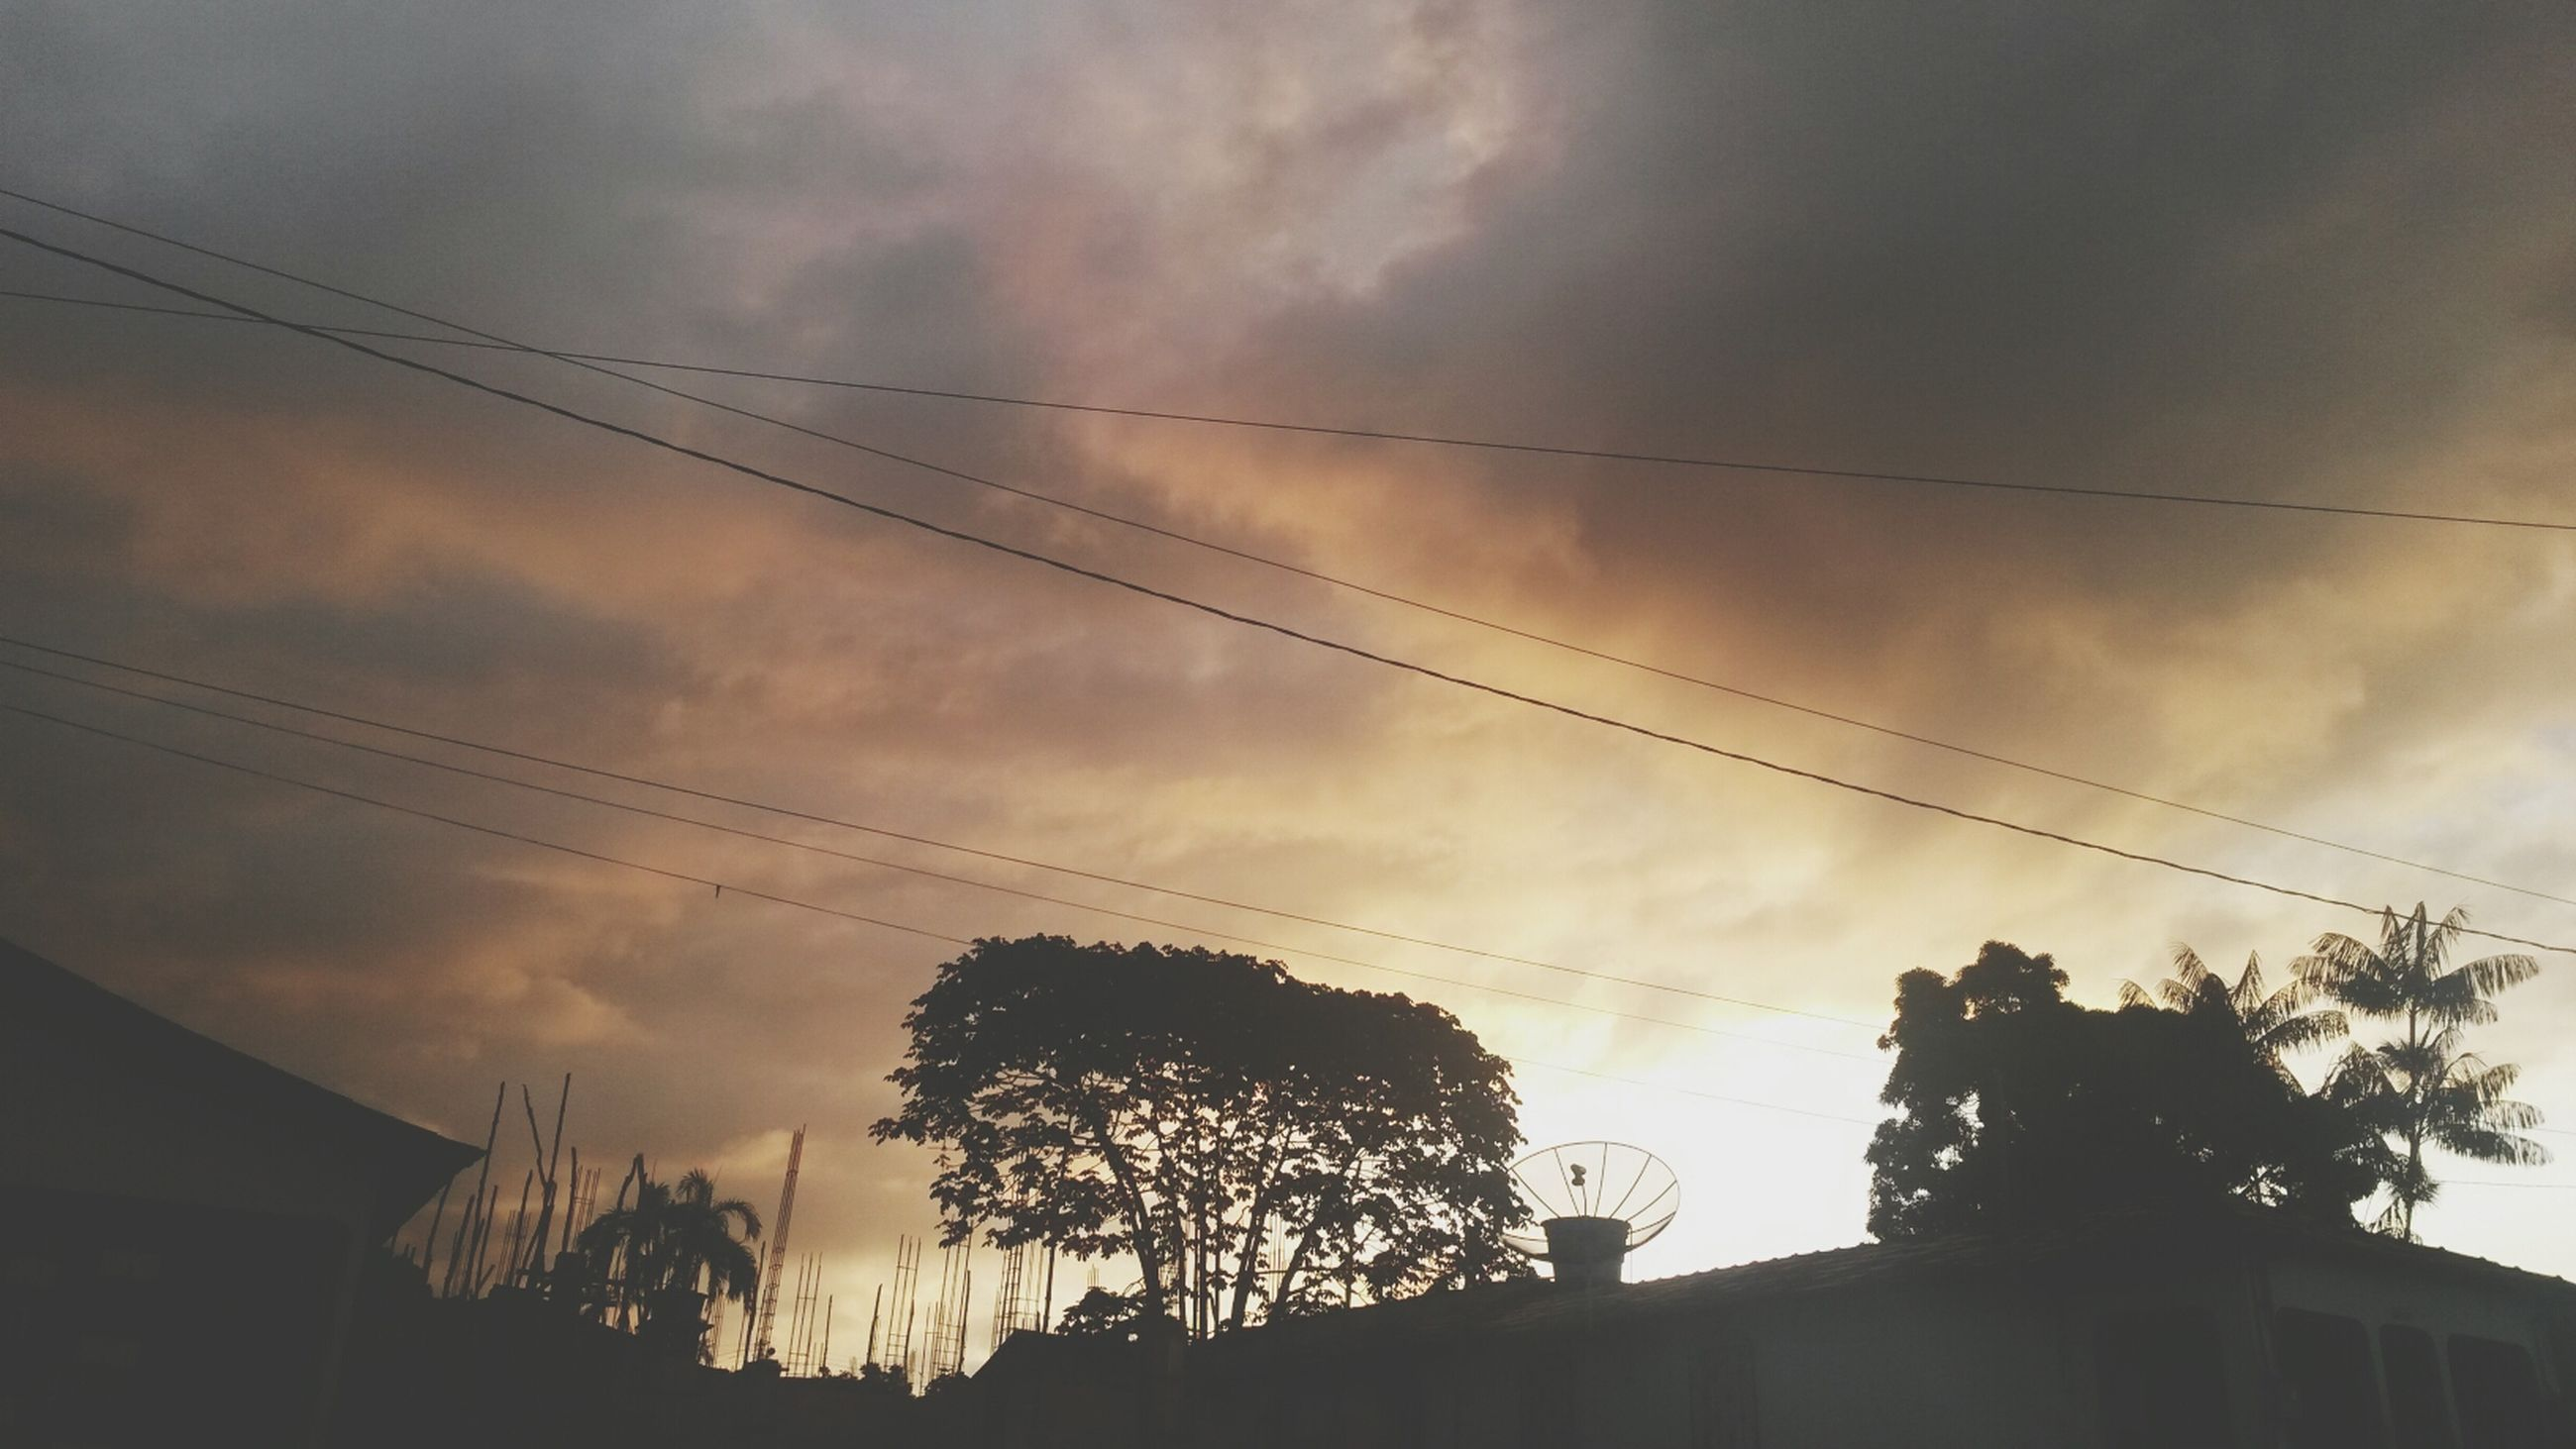 power line, low angle view, sky, silhouette, cloud - sky, cable, electricity pylon, tree, power supply, cloudy, electricity, built structure, architecture, building exterior, connection, cloud, power cable, house, sunset, dusk